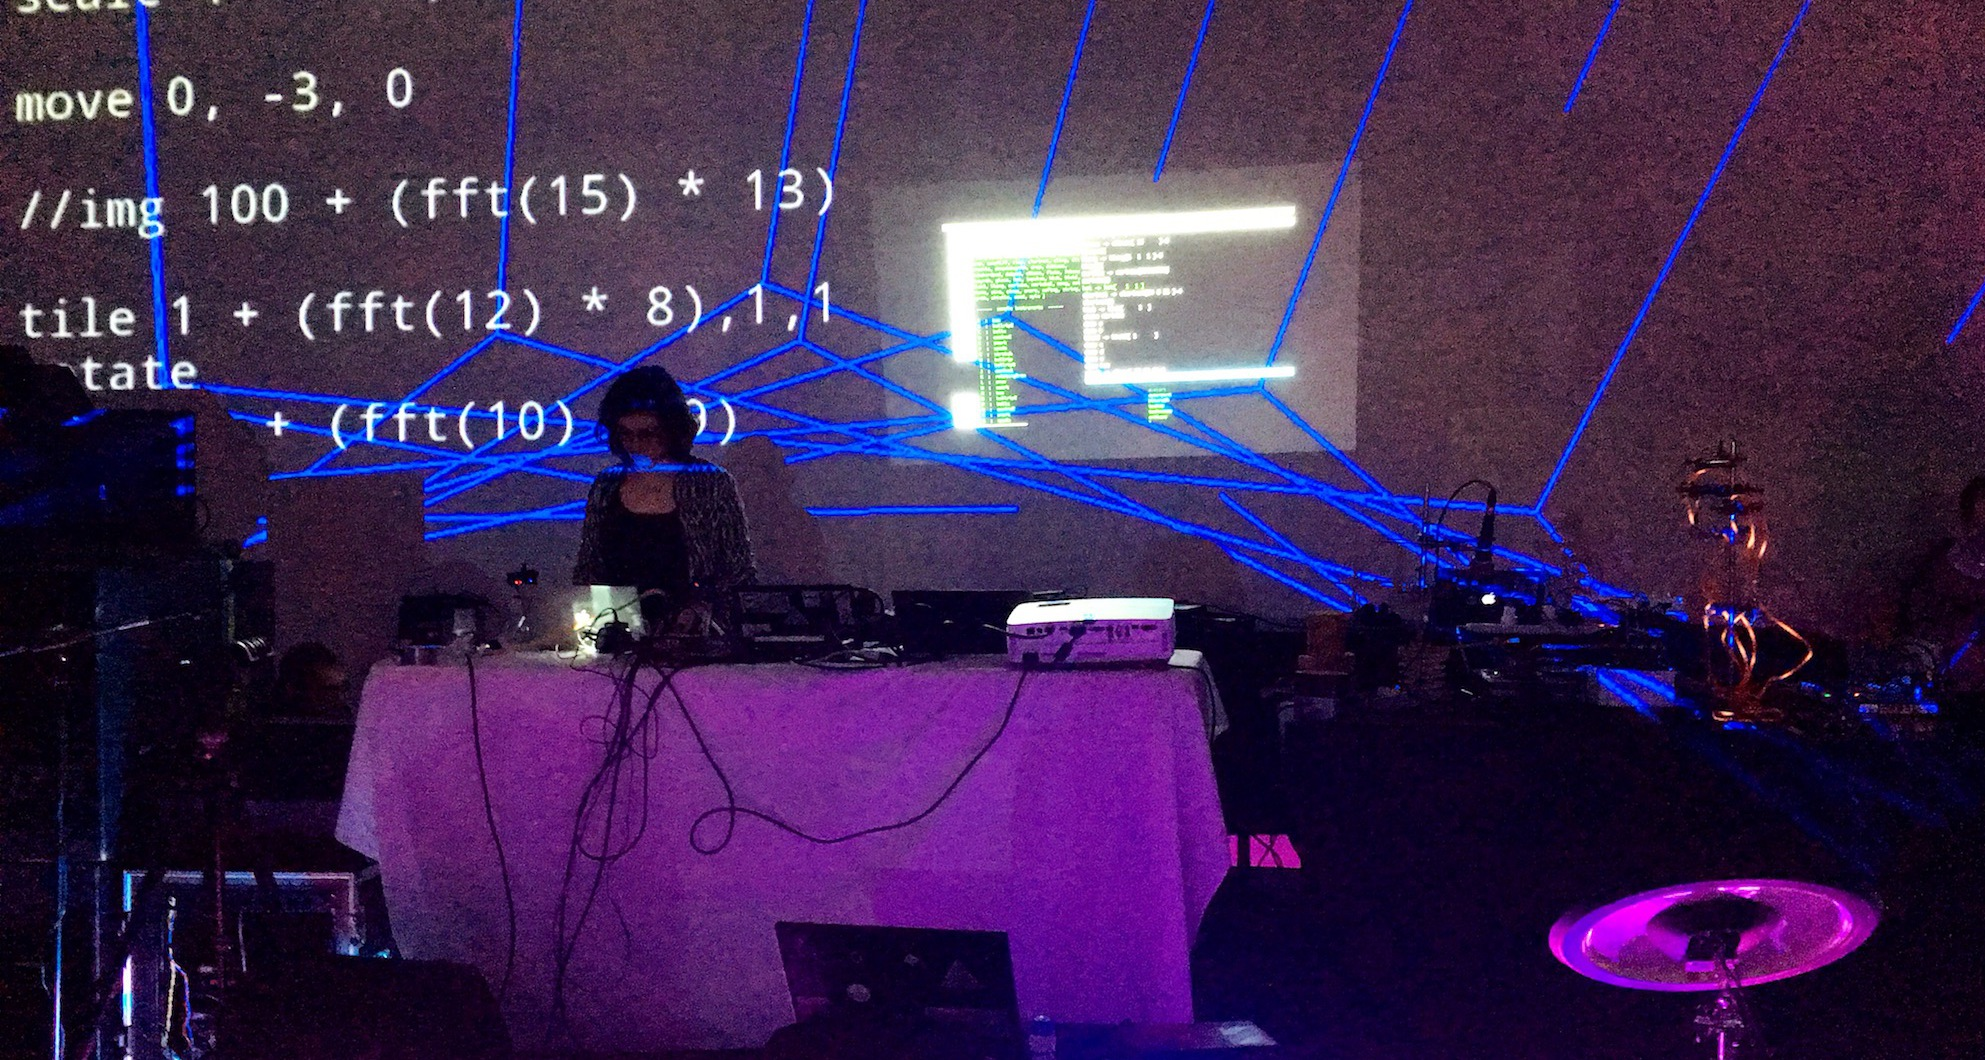 algorave photo